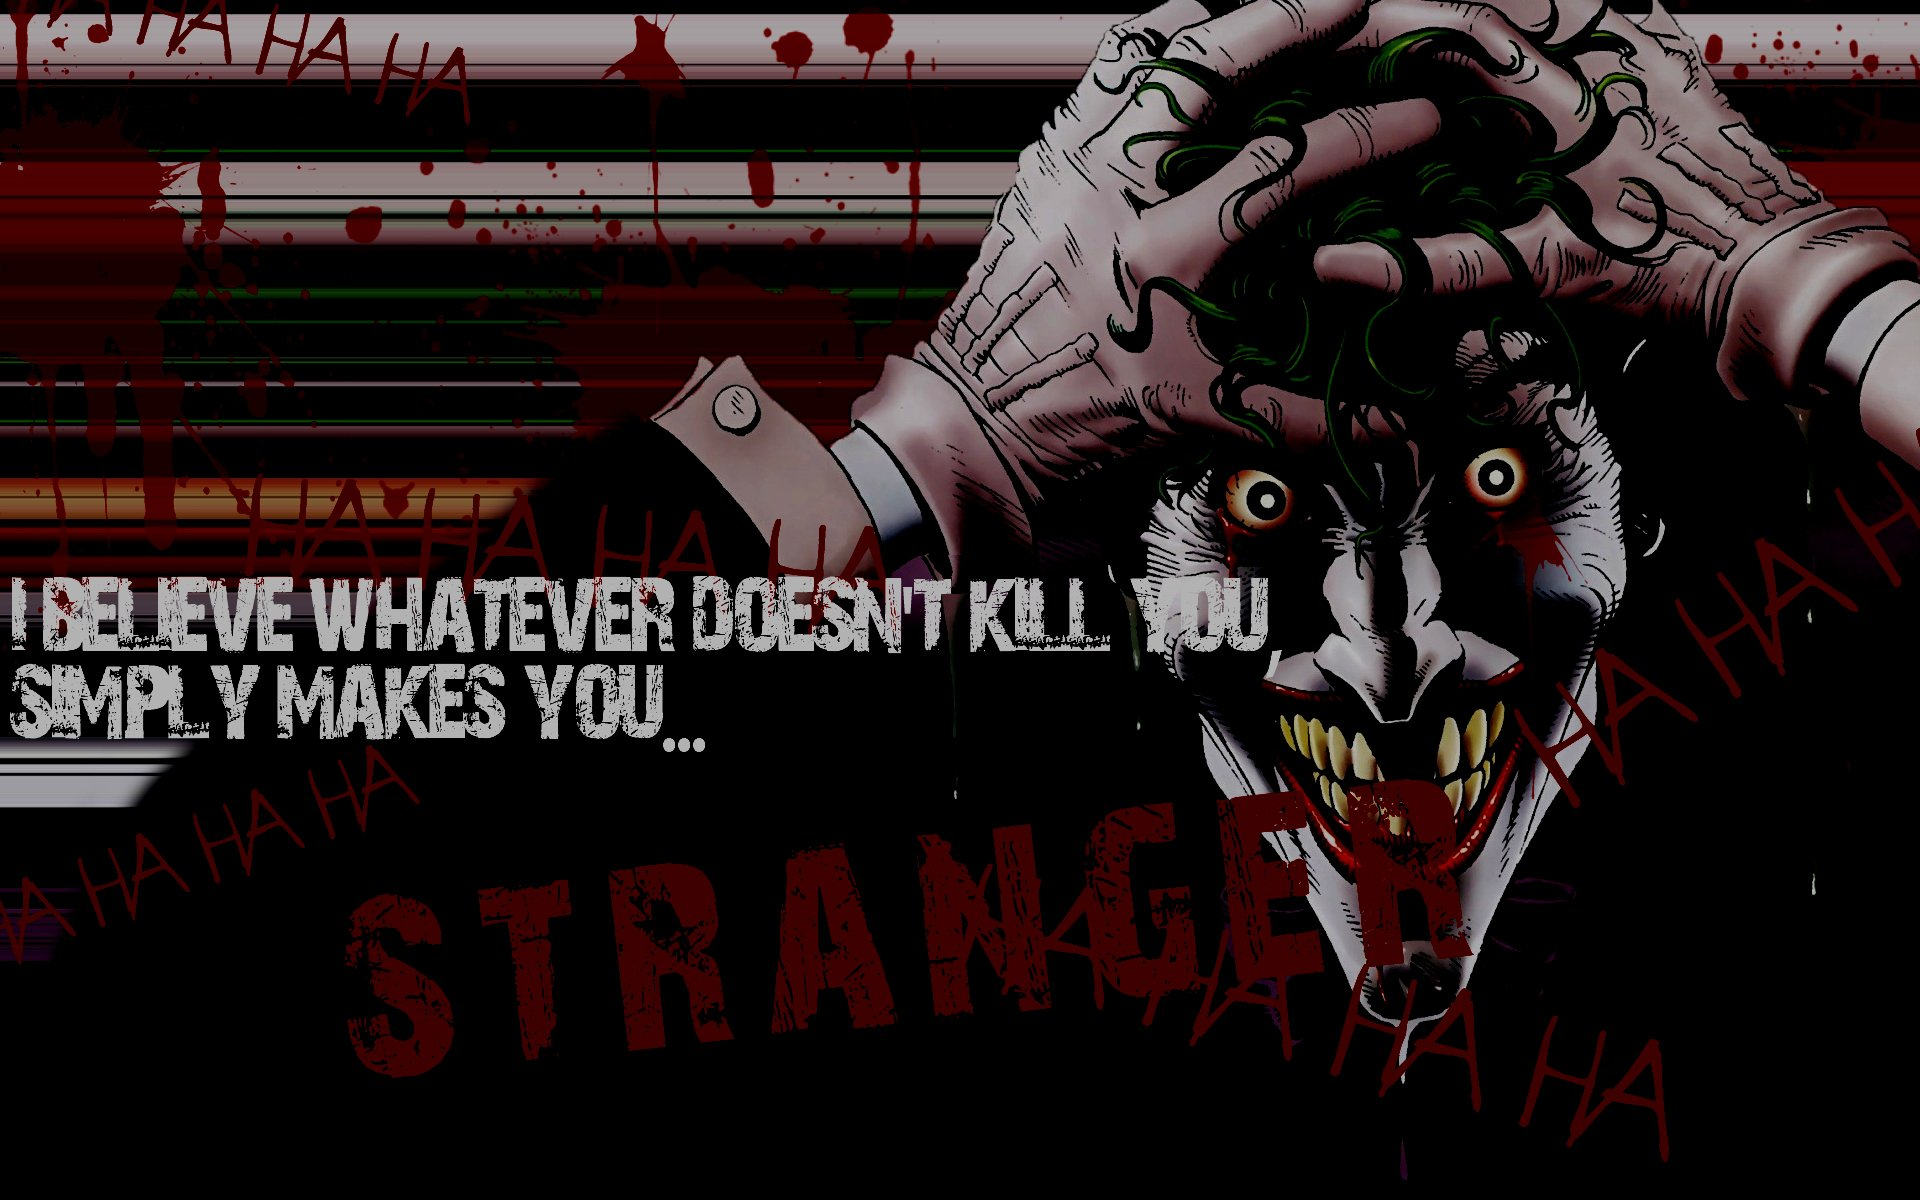 Comics The Joker typography what doesnt kill you wallpaper background 1920x1200